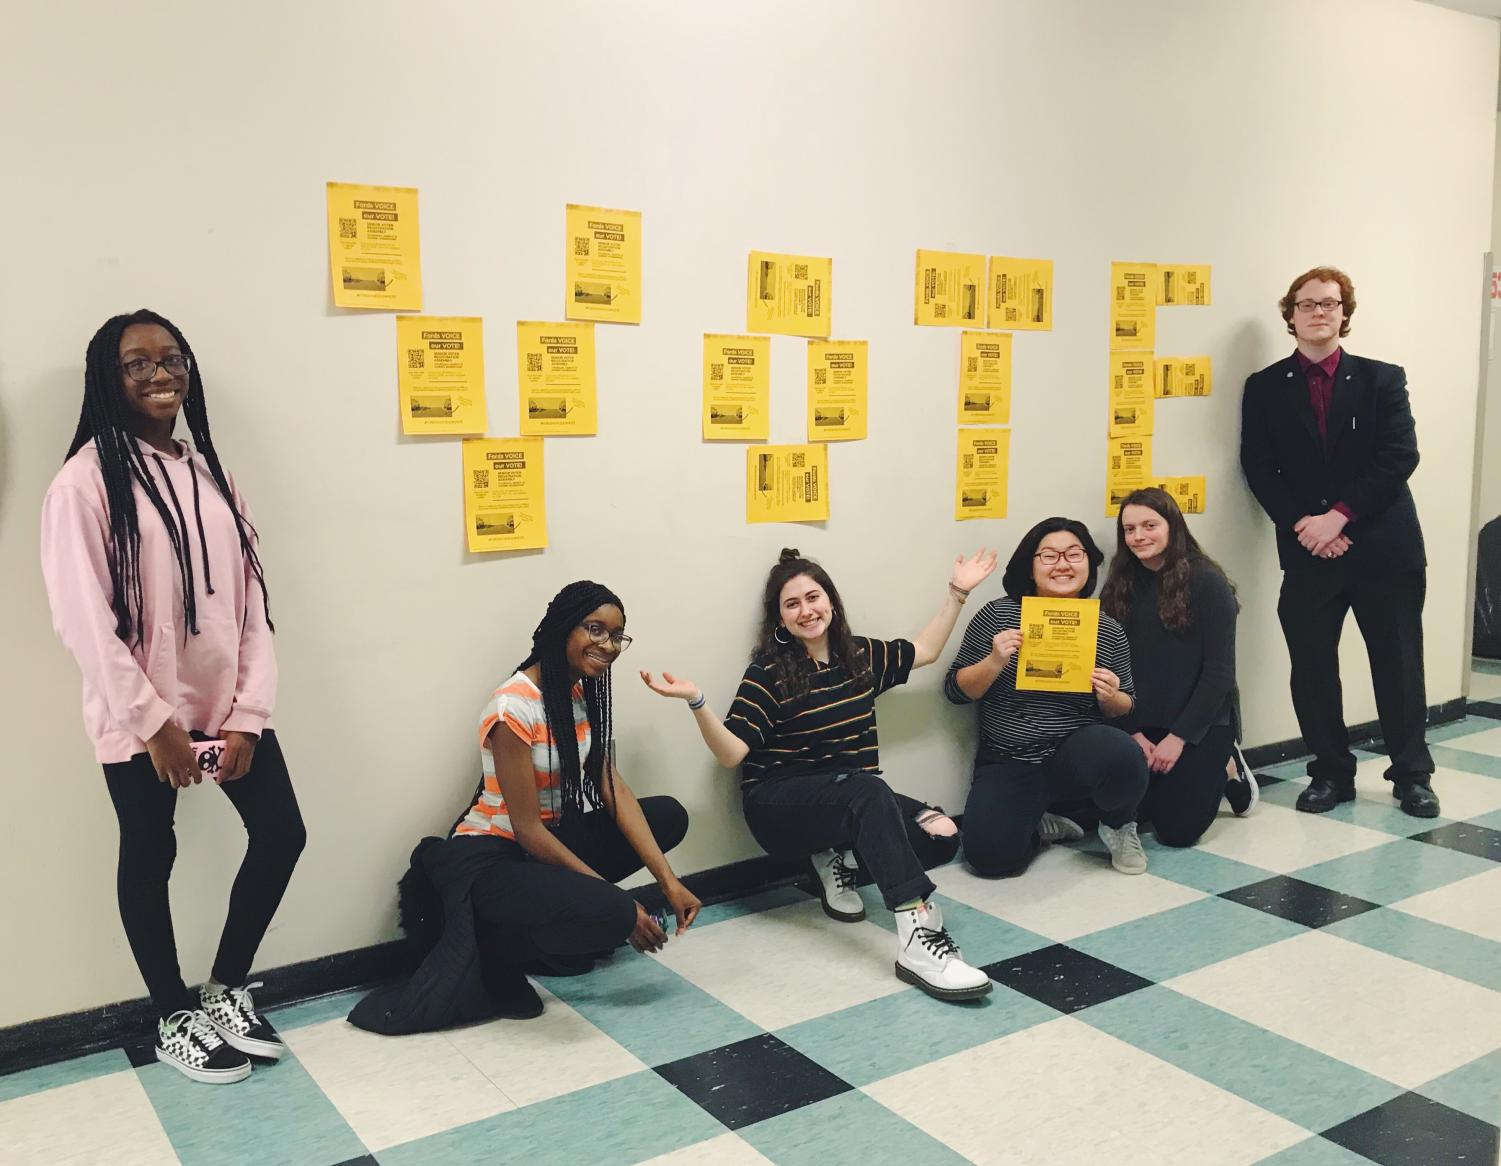 Members of the Young Democrats Club pose in front of their VOTE display.